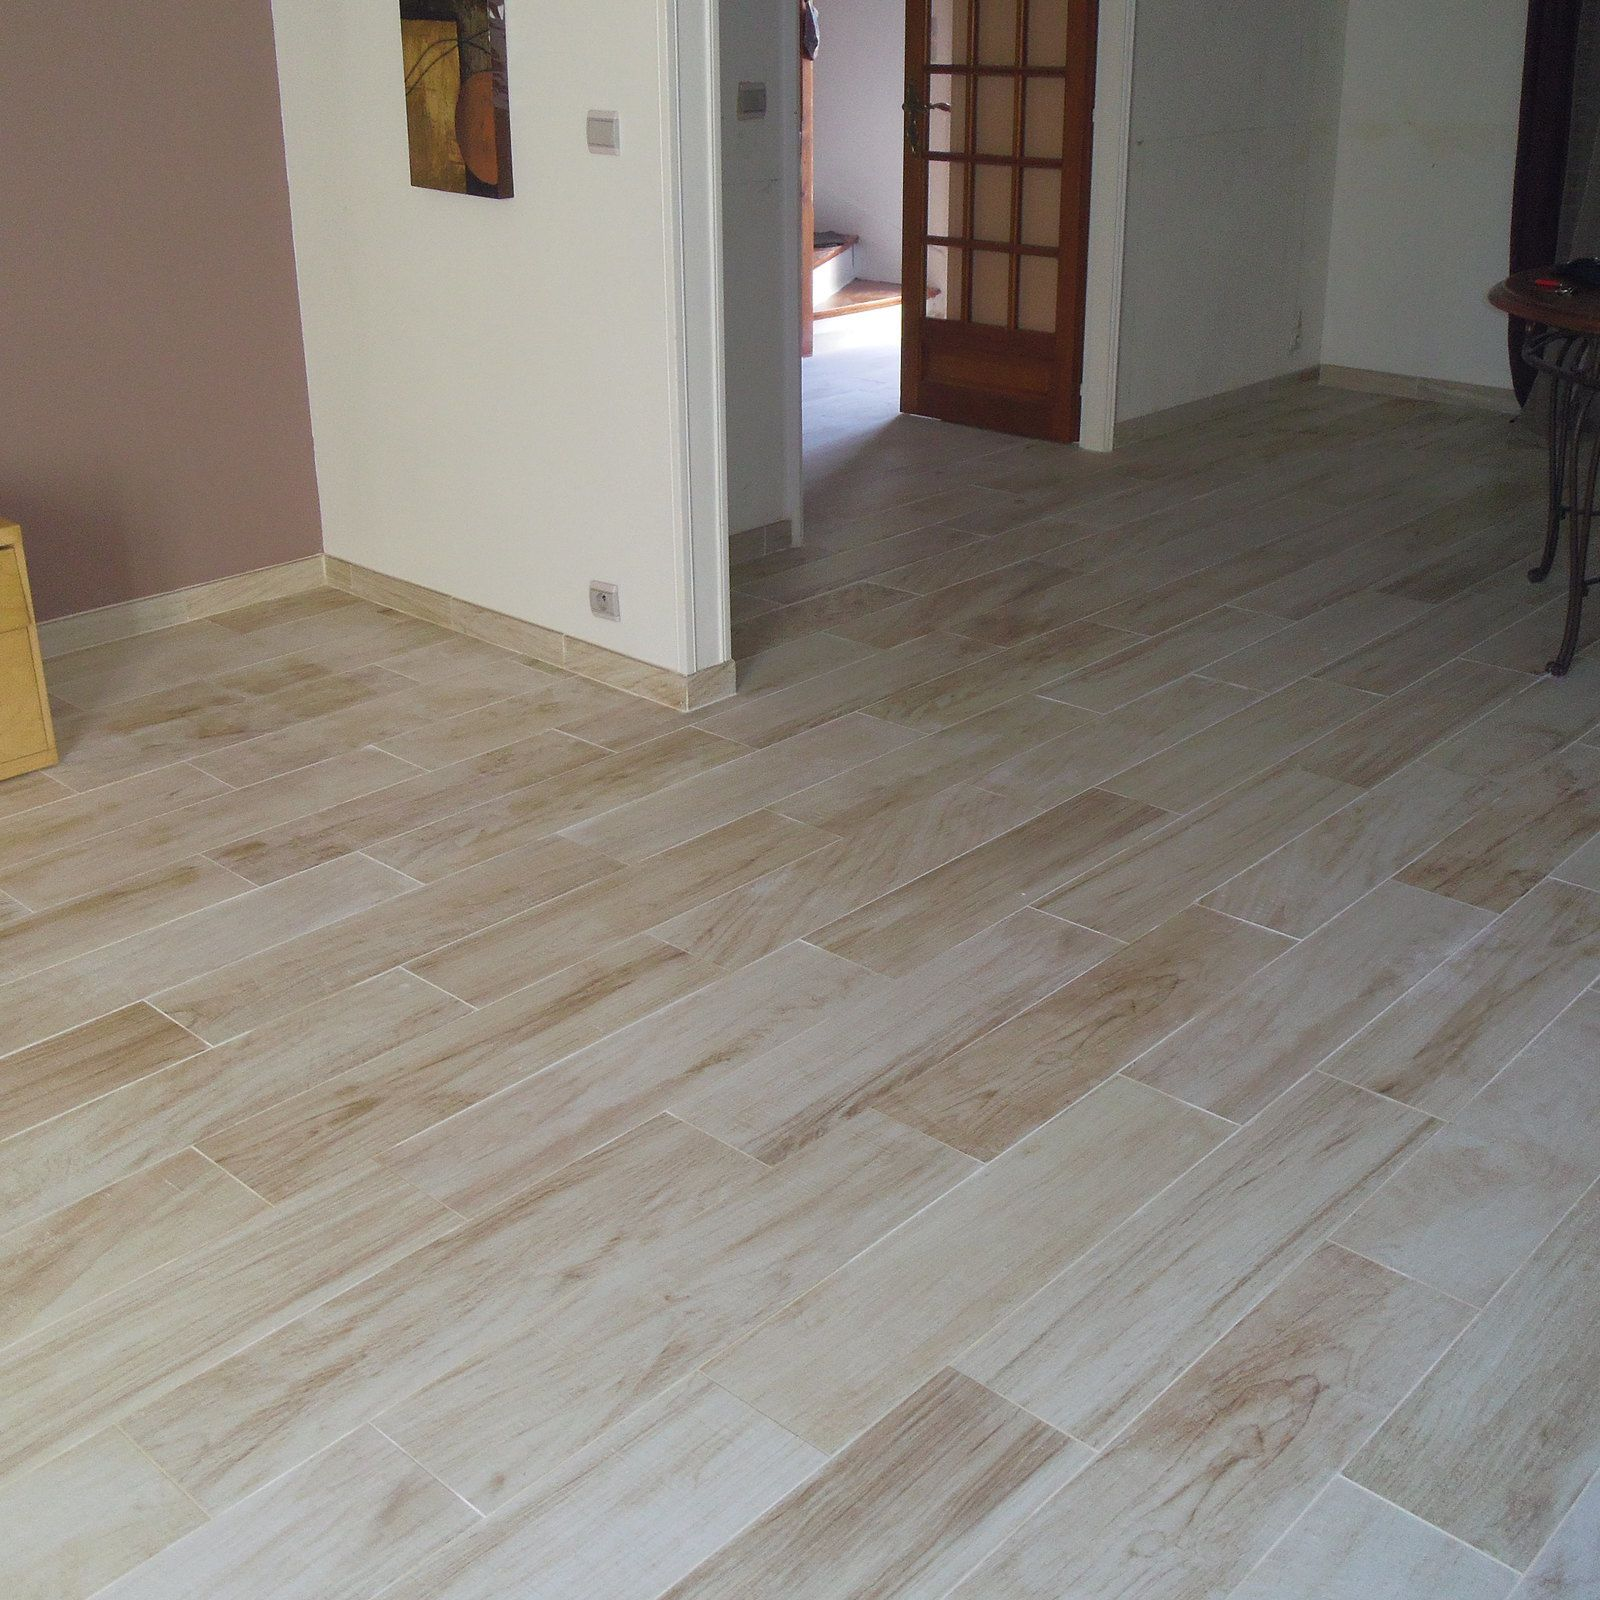 Pose d un carrelage imitation parquet 28 images poser for Carrelage imitation parquet